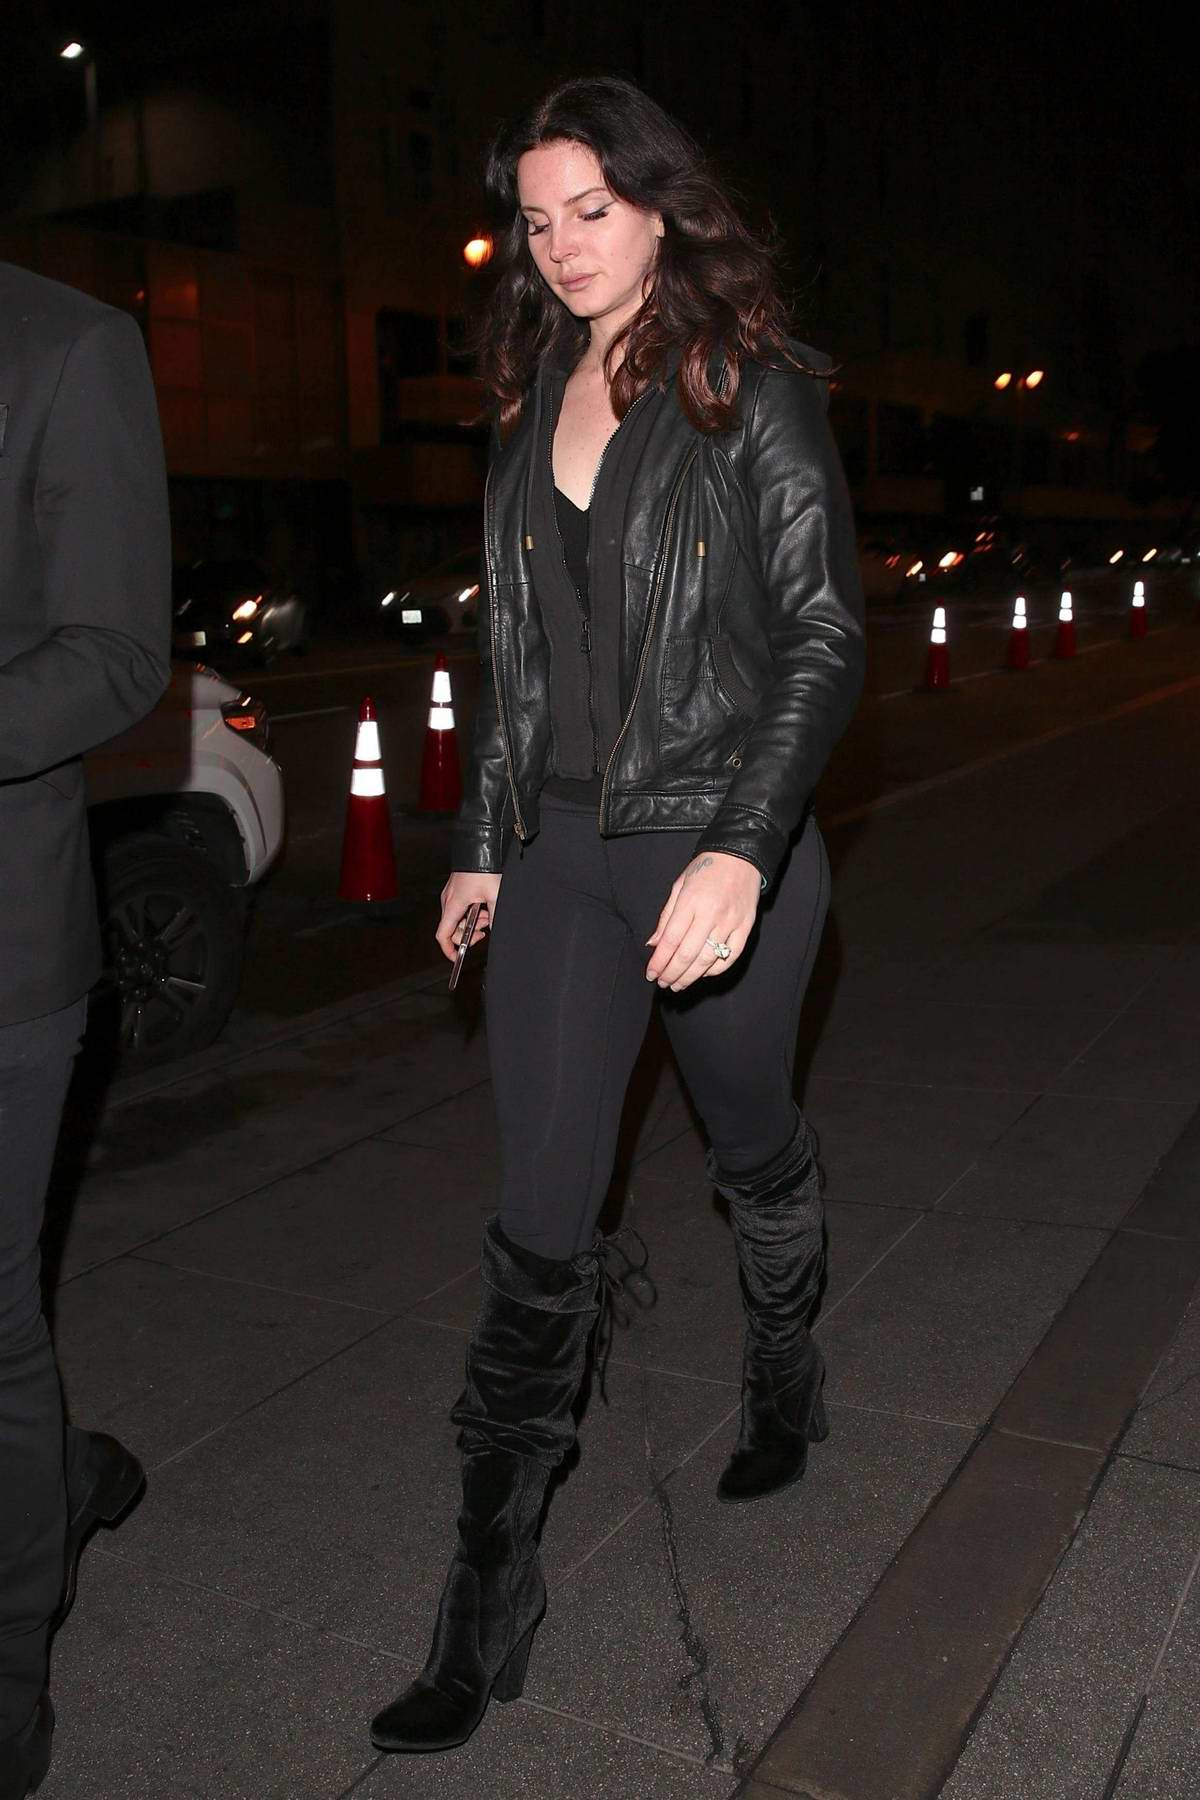 Lana Del Rey attends a Robert Plant concert in Downtown Los Angeles